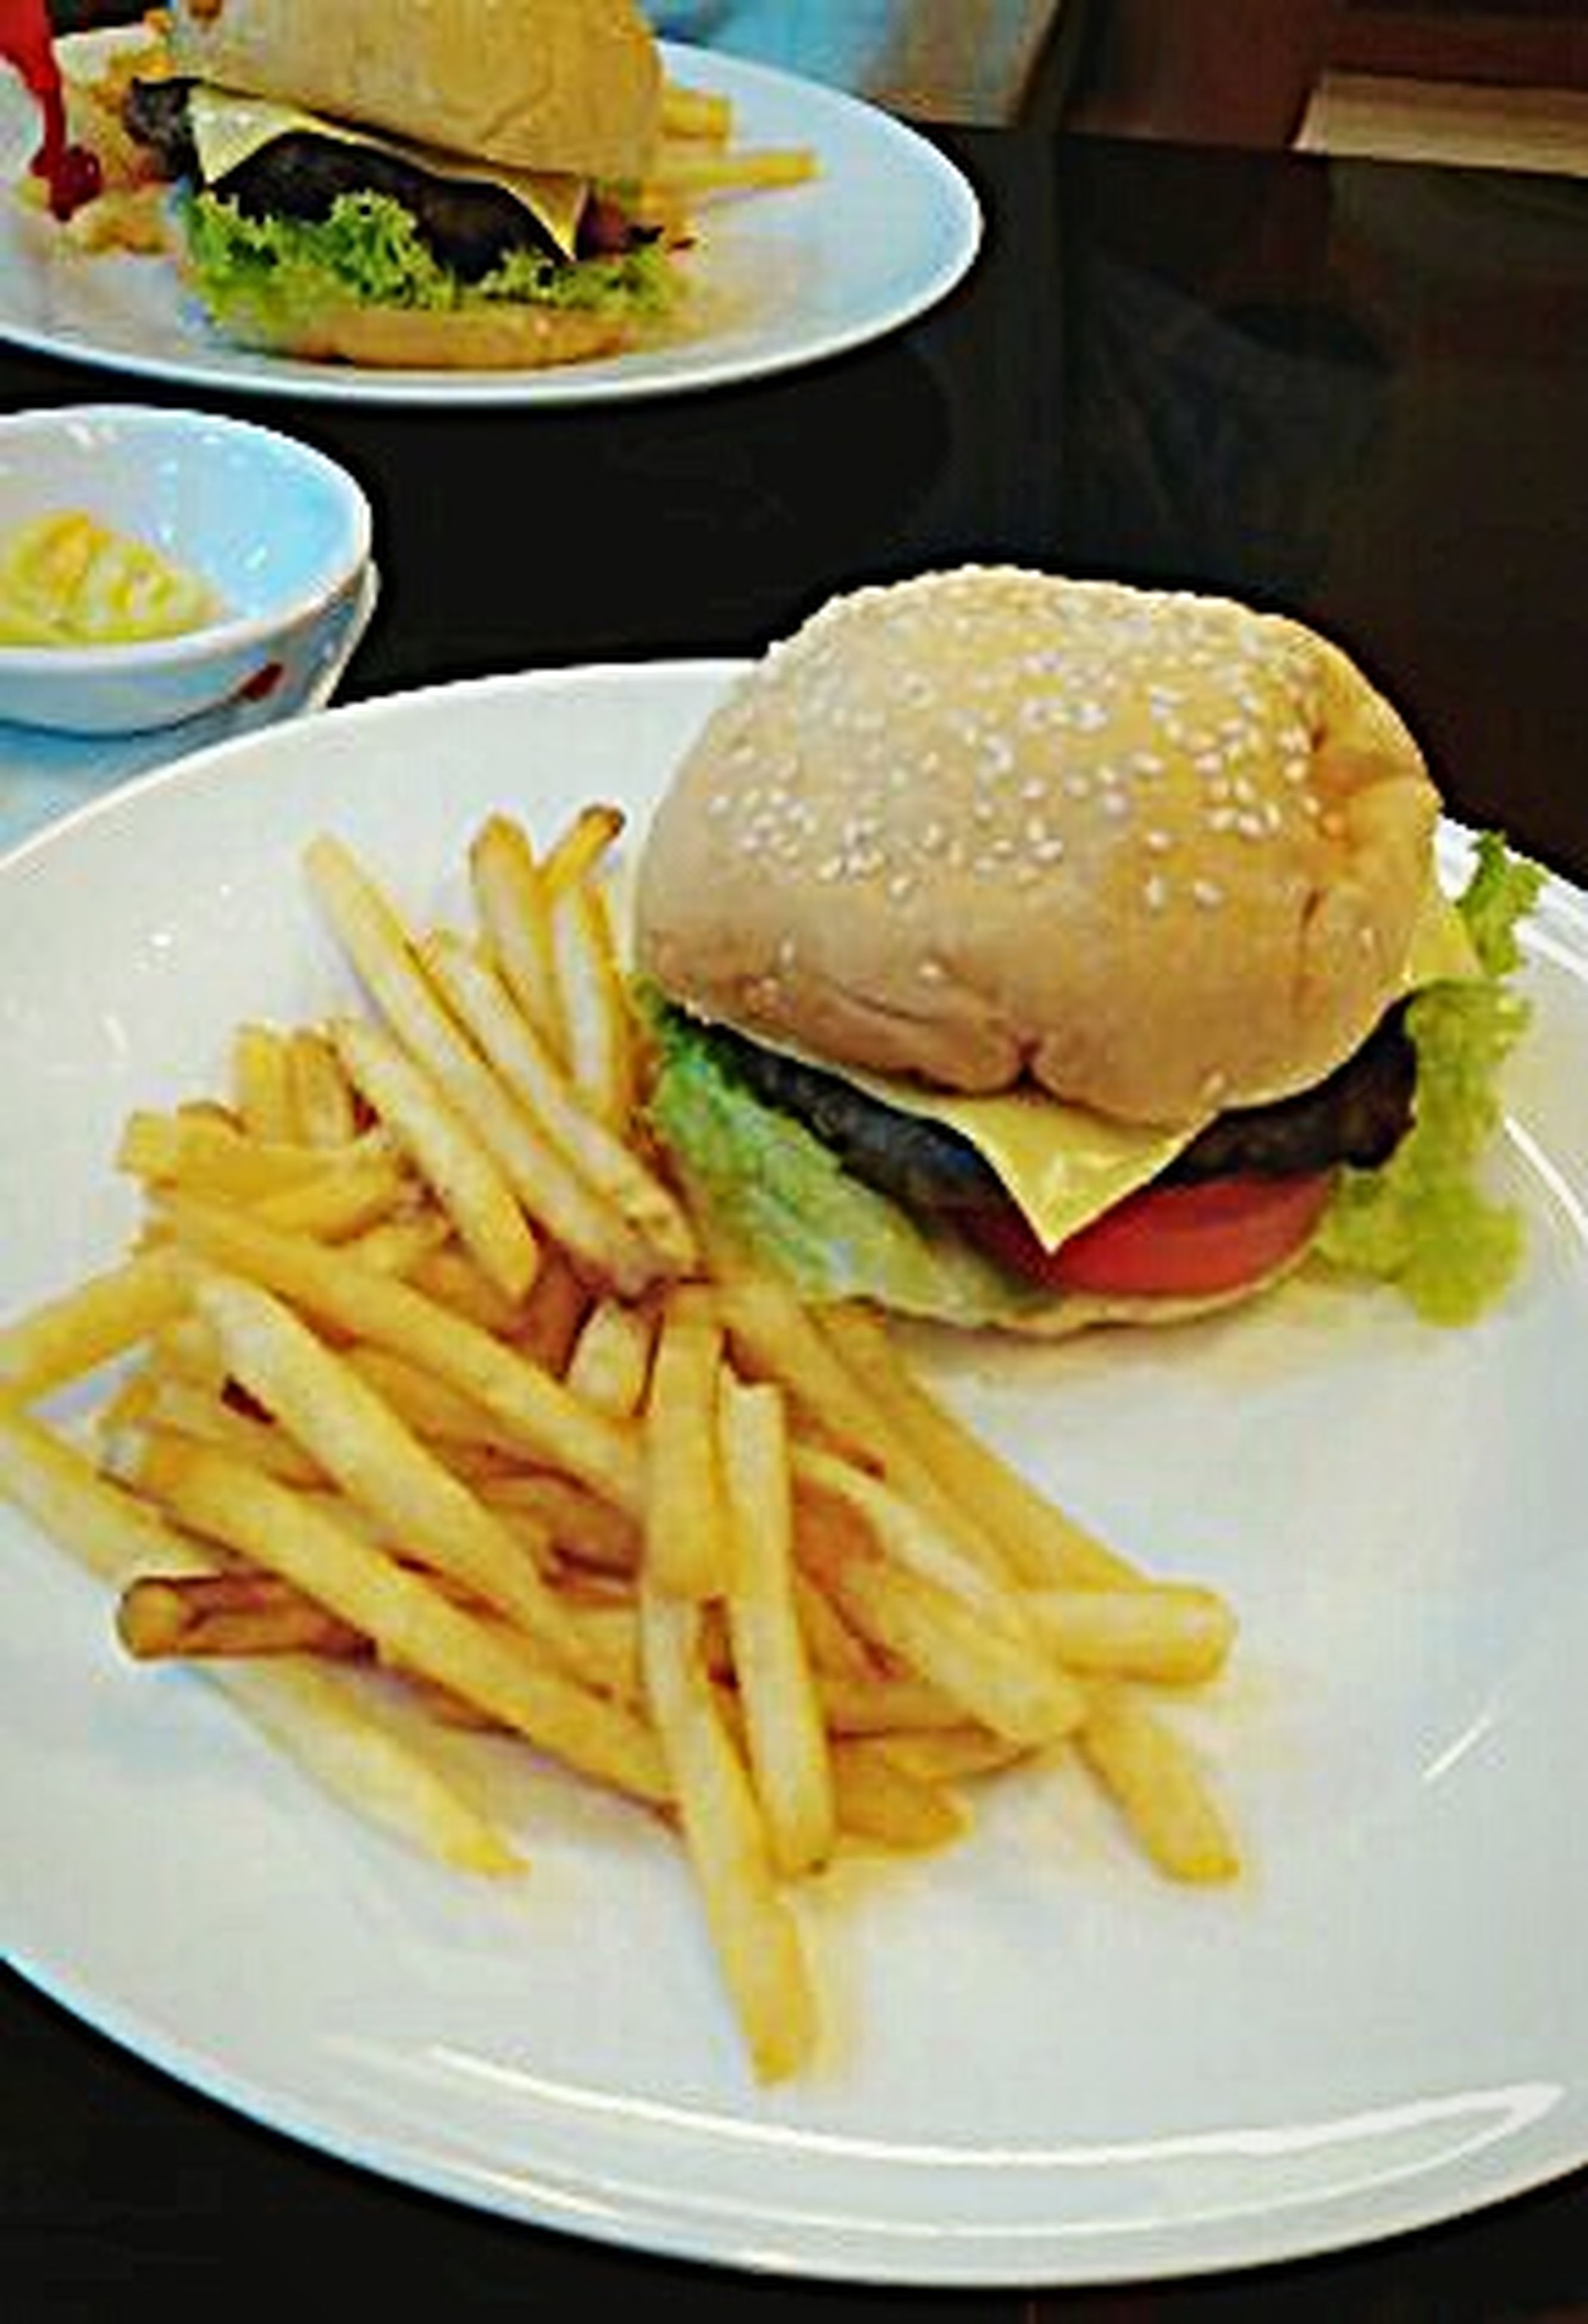 french fries, prepared potato, unhealthy eating, food and drink, ready-to-eat, fast food, fried, hamburger, close-up, no people, plate, snack, freshness, indoors, bun, day